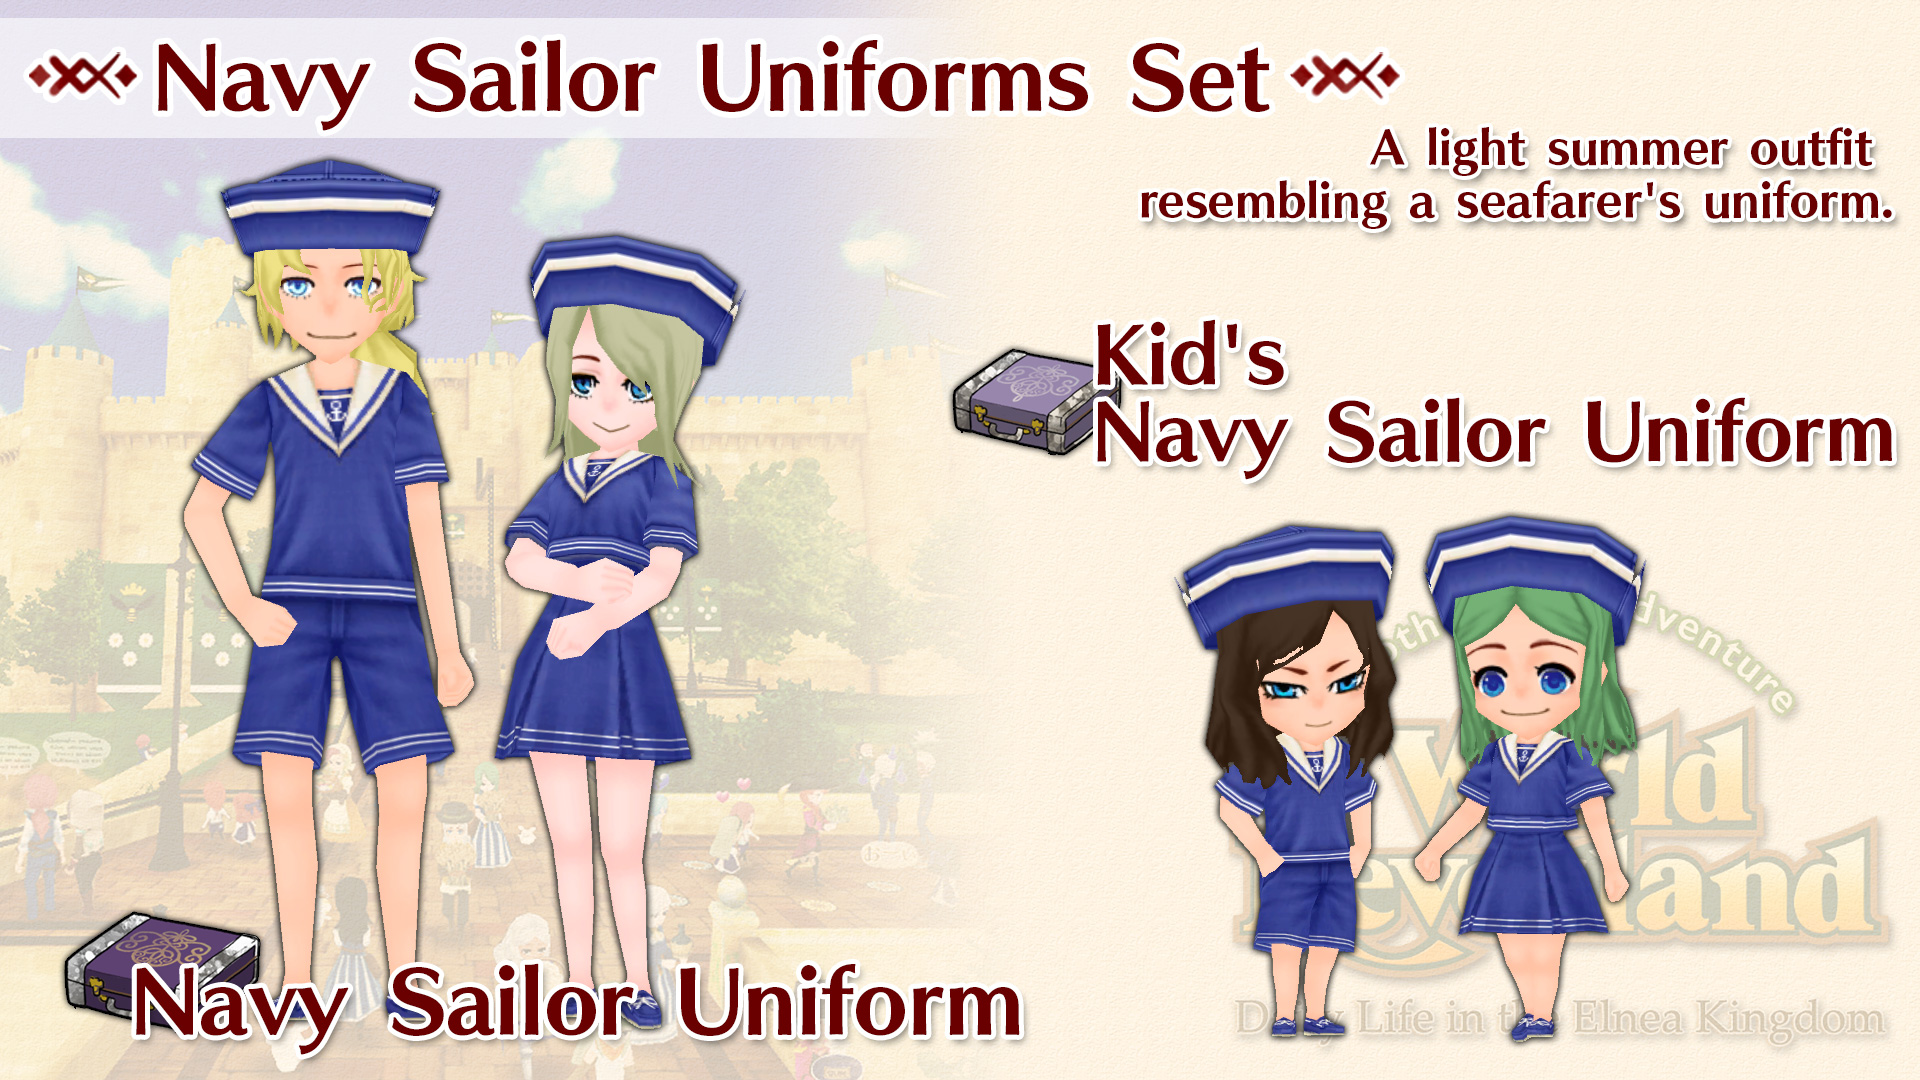 Navy Sailor Uniforms Set